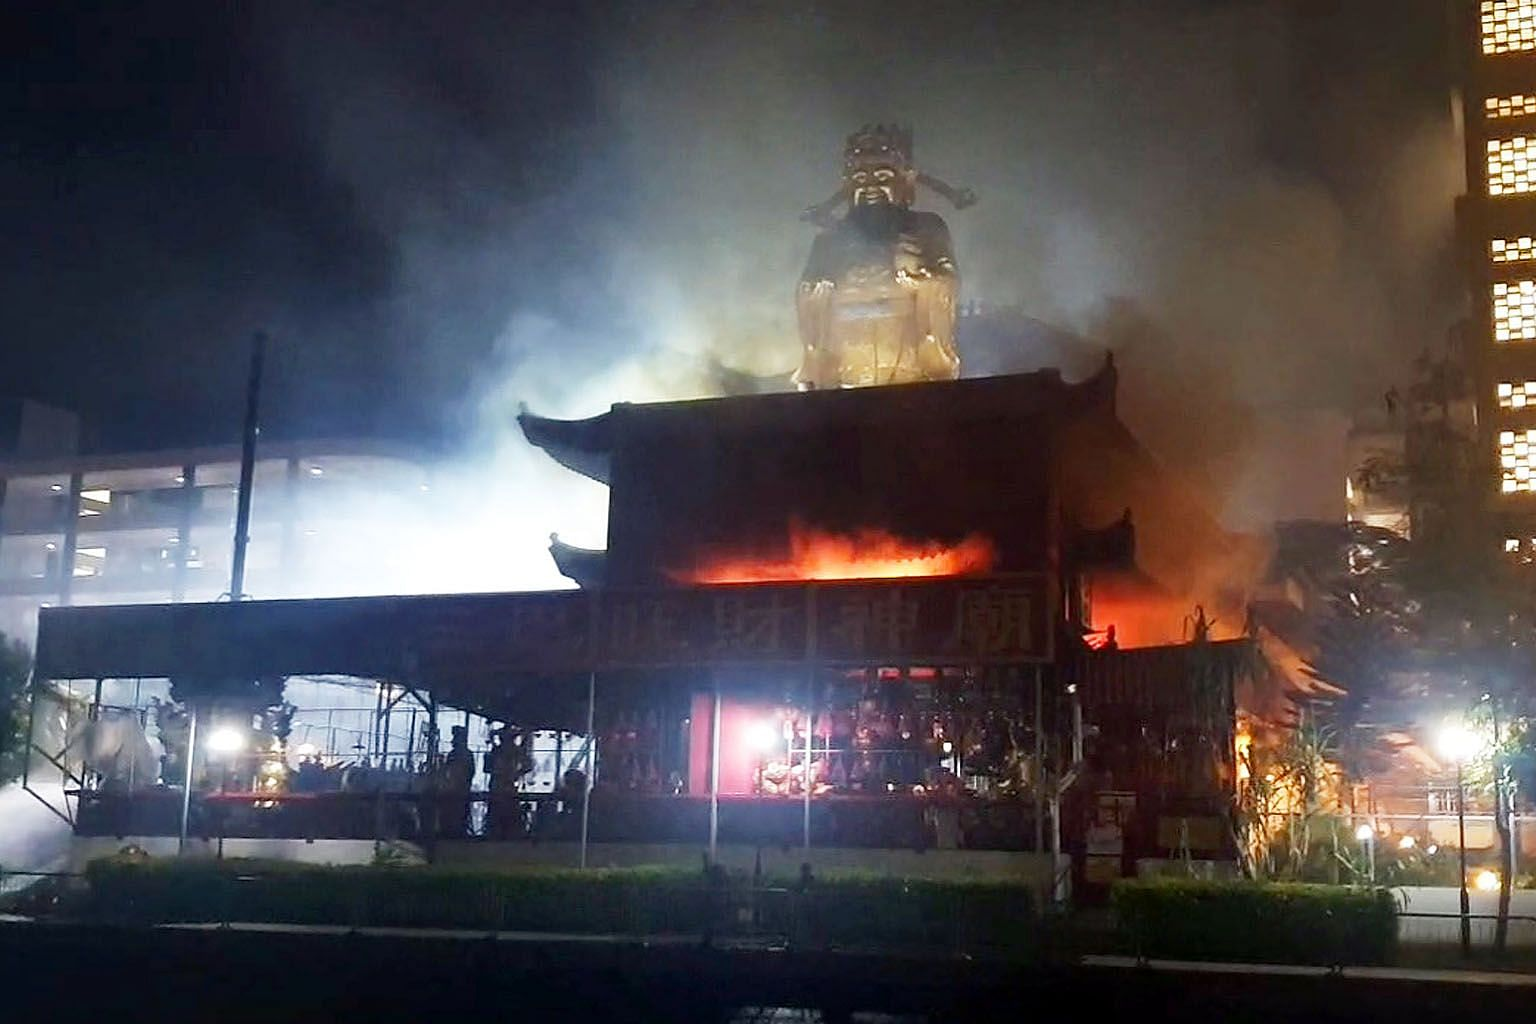 Plumes of smoke could be seen billowing from the temple as flames raged in the compound behind the main temple sign in a Facebook live stream posted by Chinese daily Lianhe Zaobao last night.